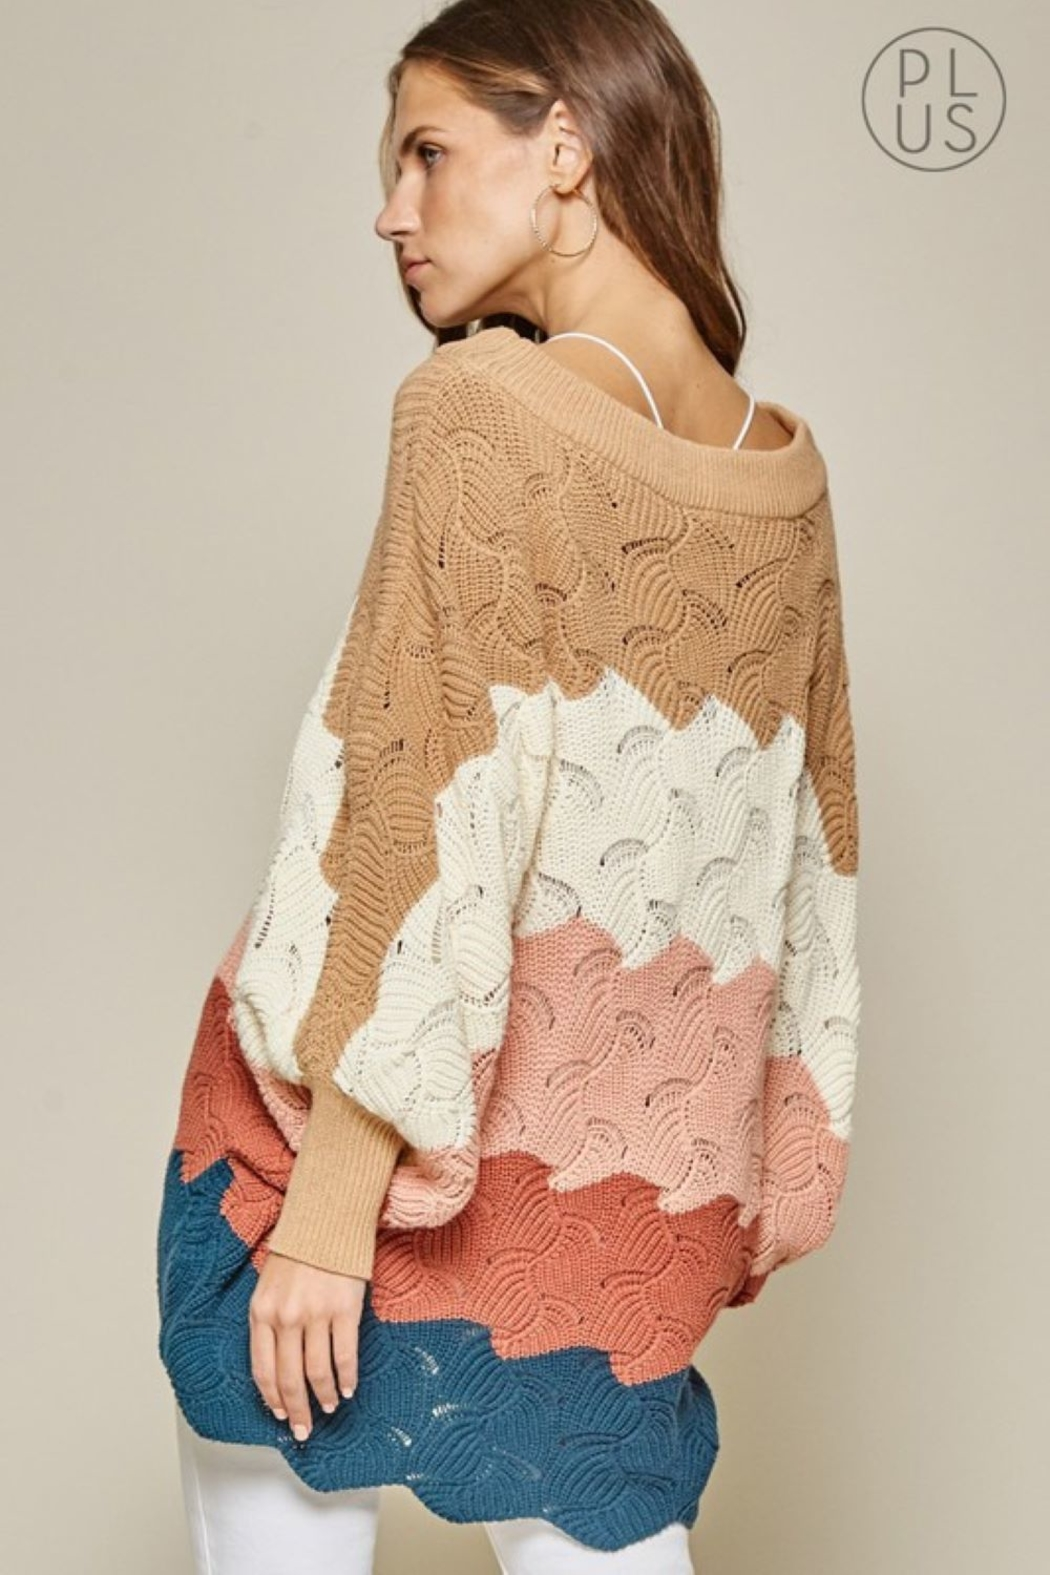 Andree by Unit Color Block Sweater - Main Image